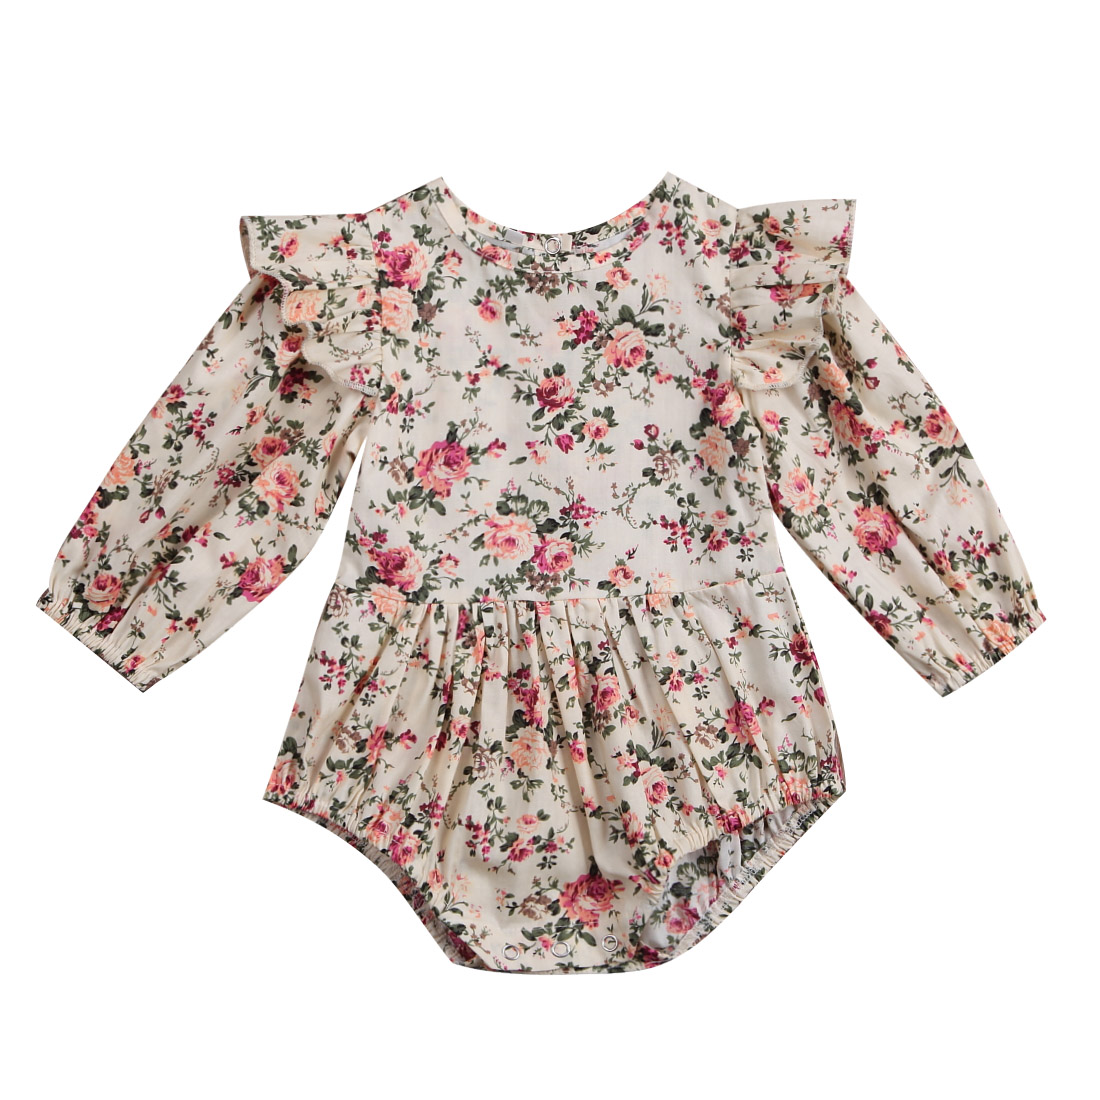 Toddler Girls Rompers and Jumpsuits Ruffled Sleeve Floral Outfits for Toddler Girls